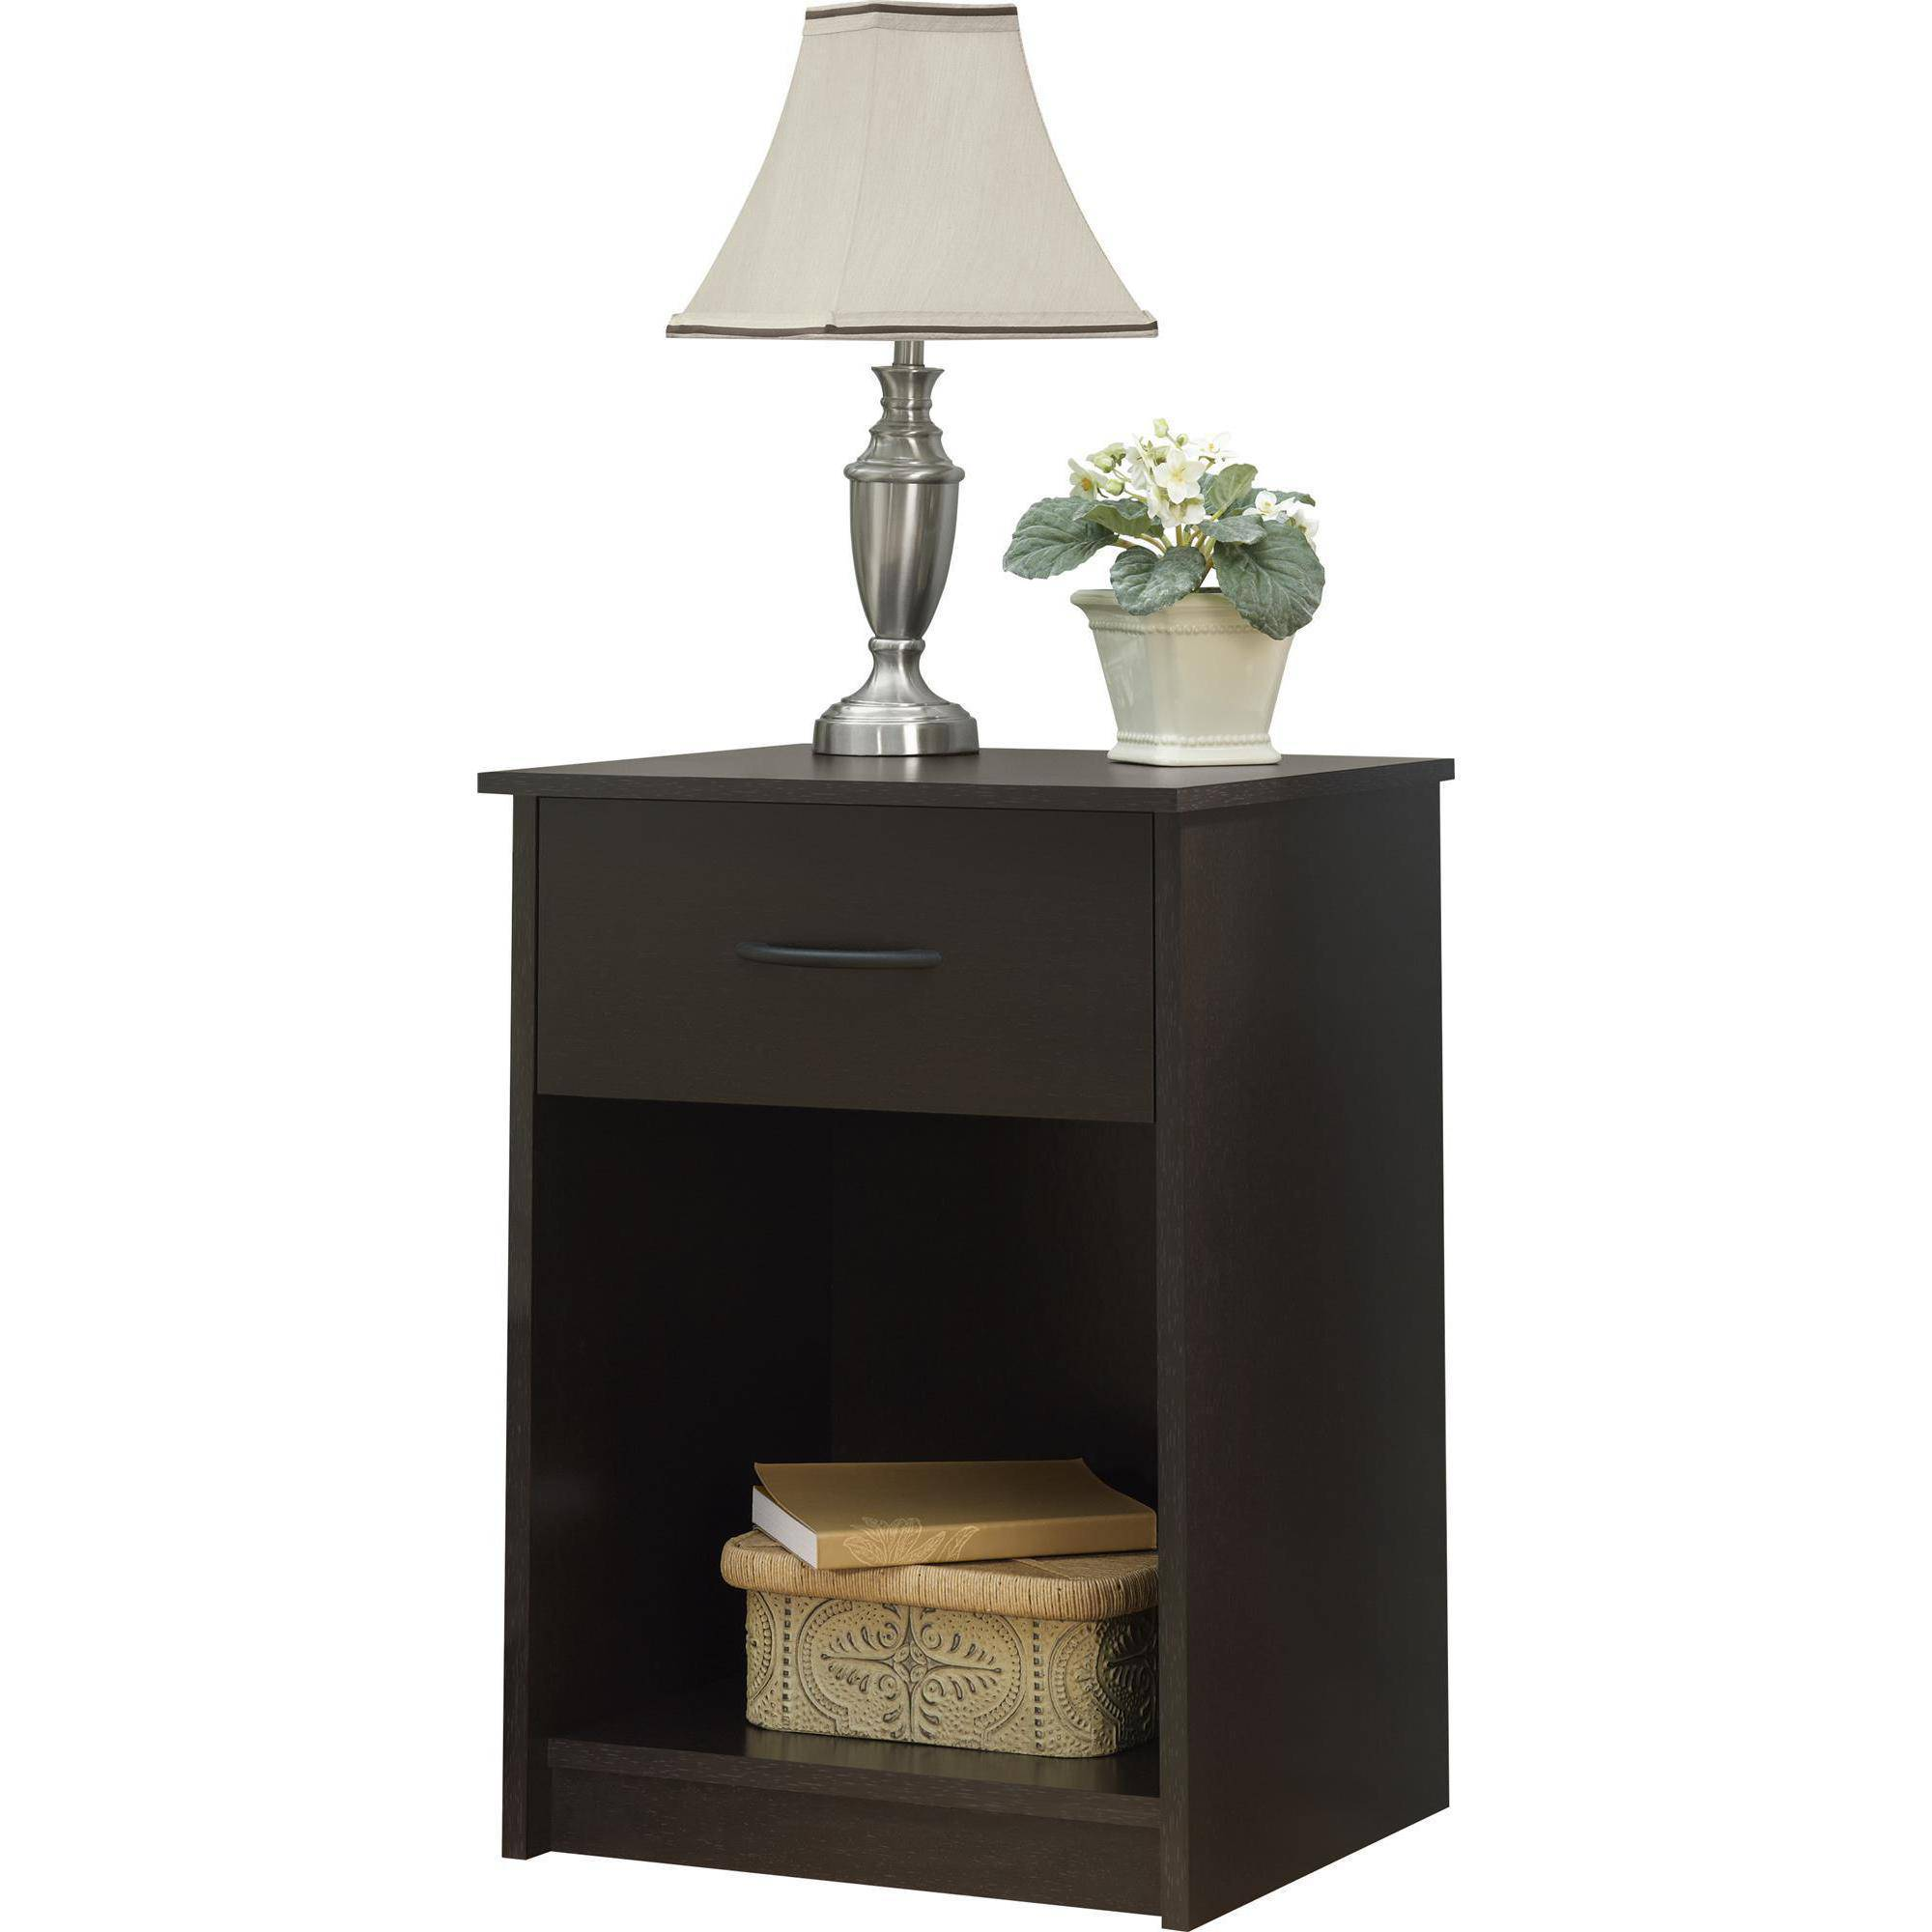 Marvelous Mainstays 1 Drawer Nightstand / End Table, Espresso